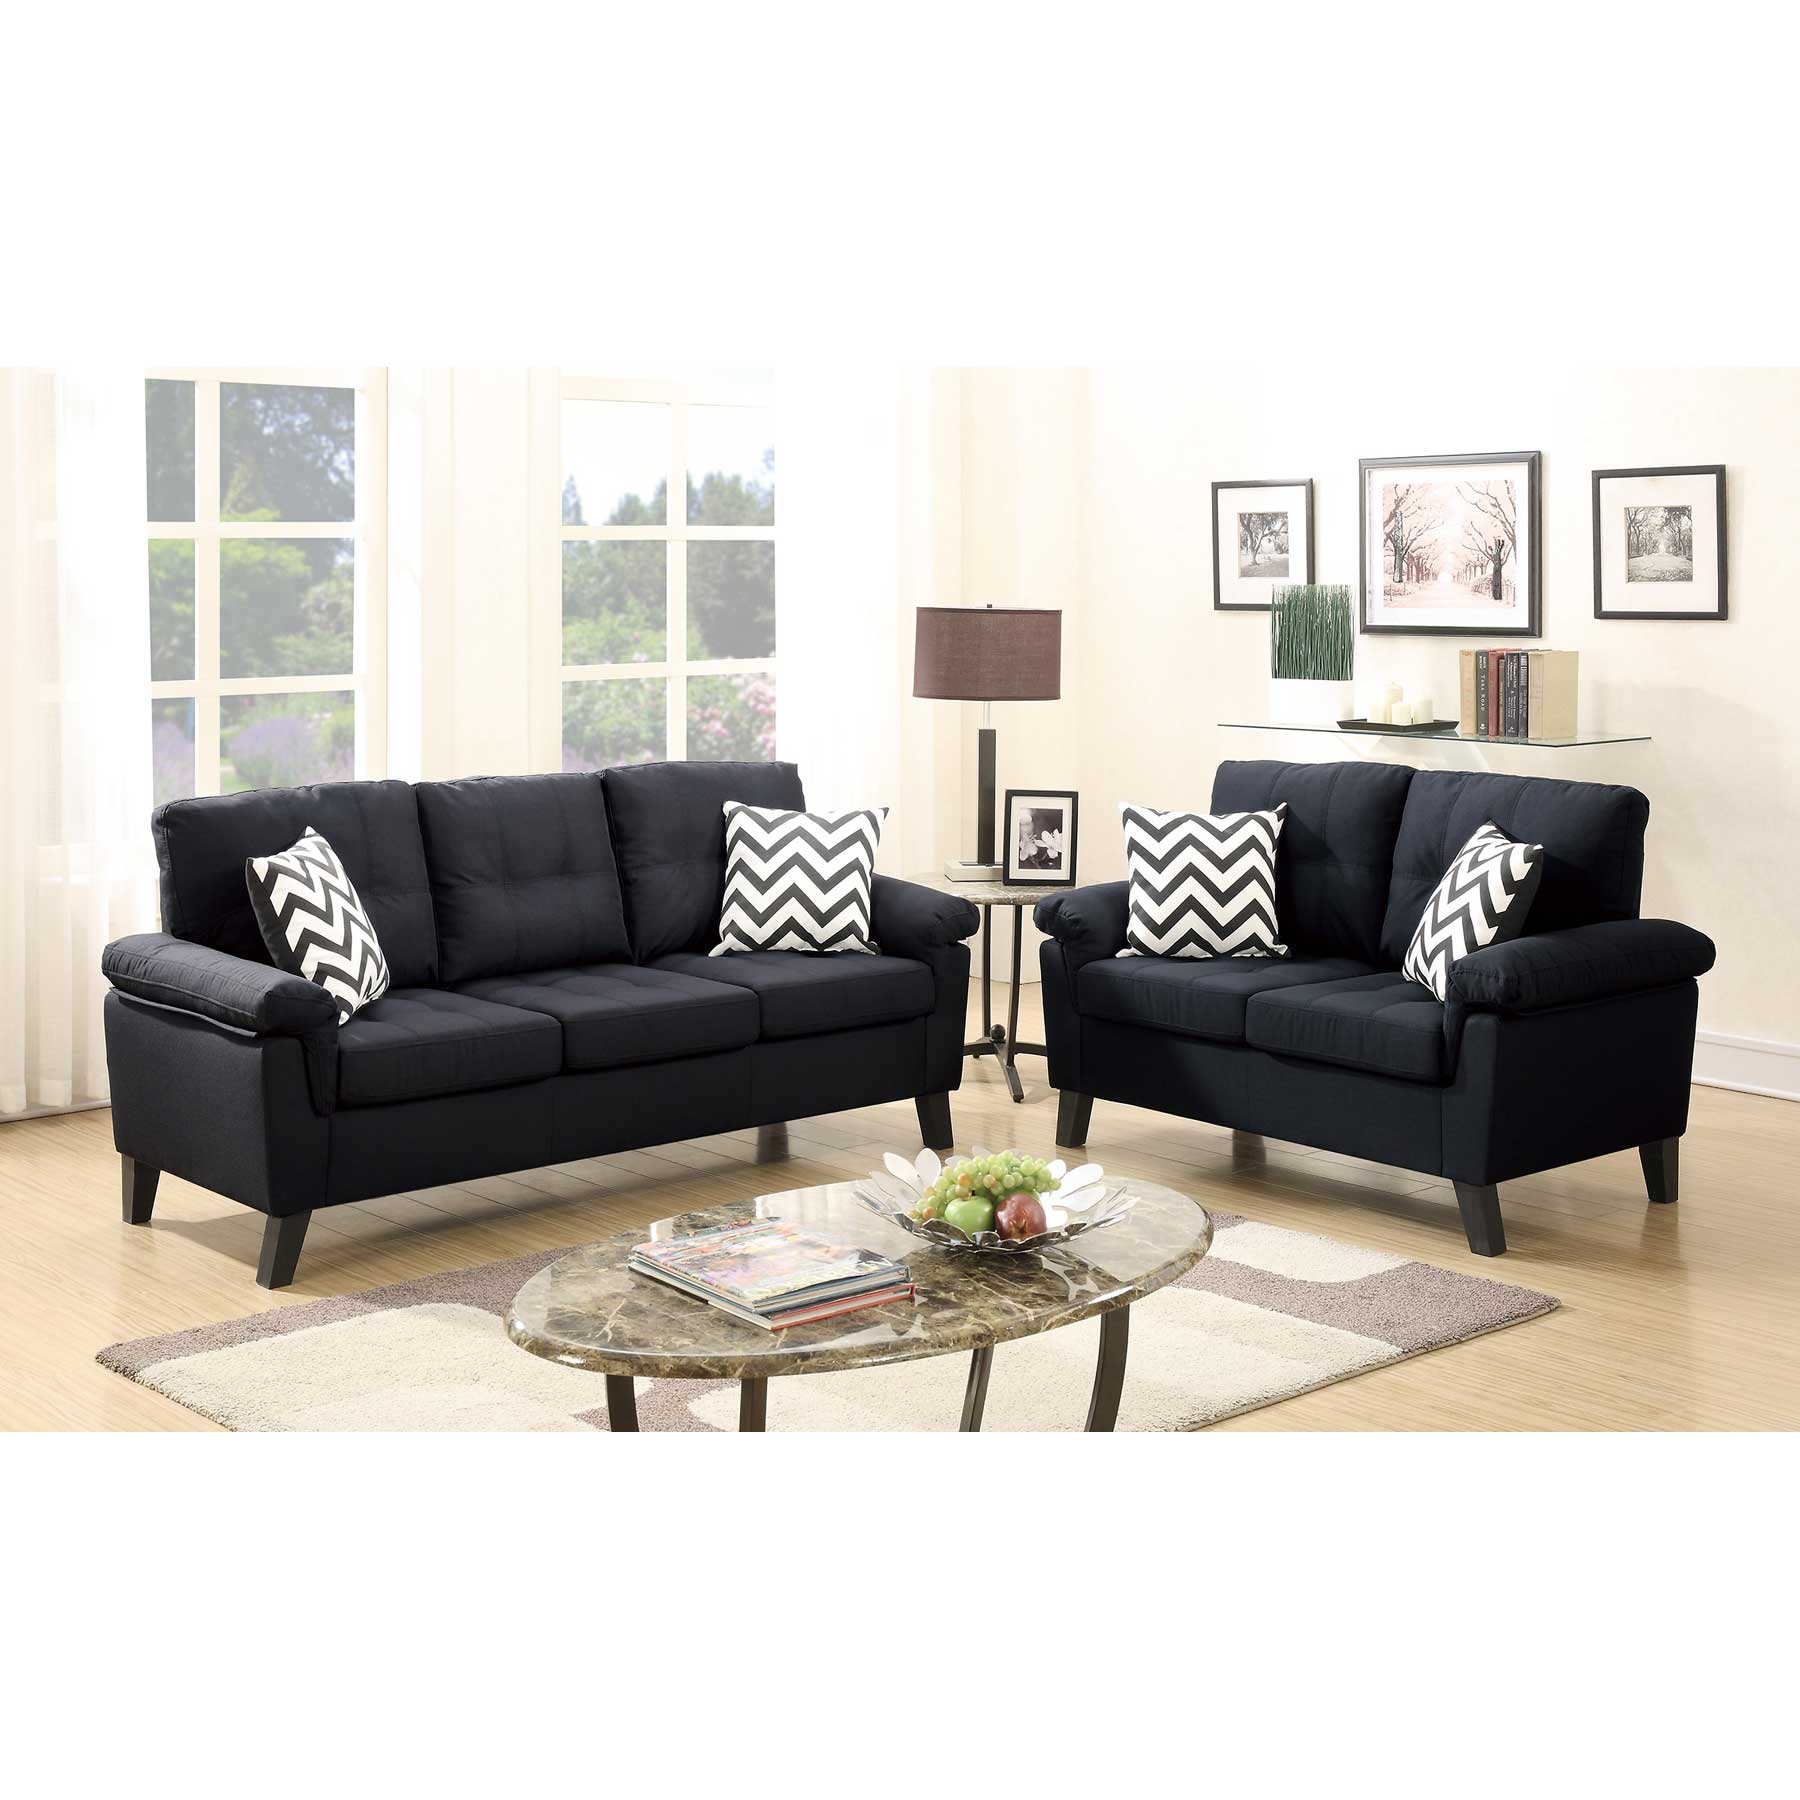 Black Polyfiber 2-Pcs Sofa Loveseat Set